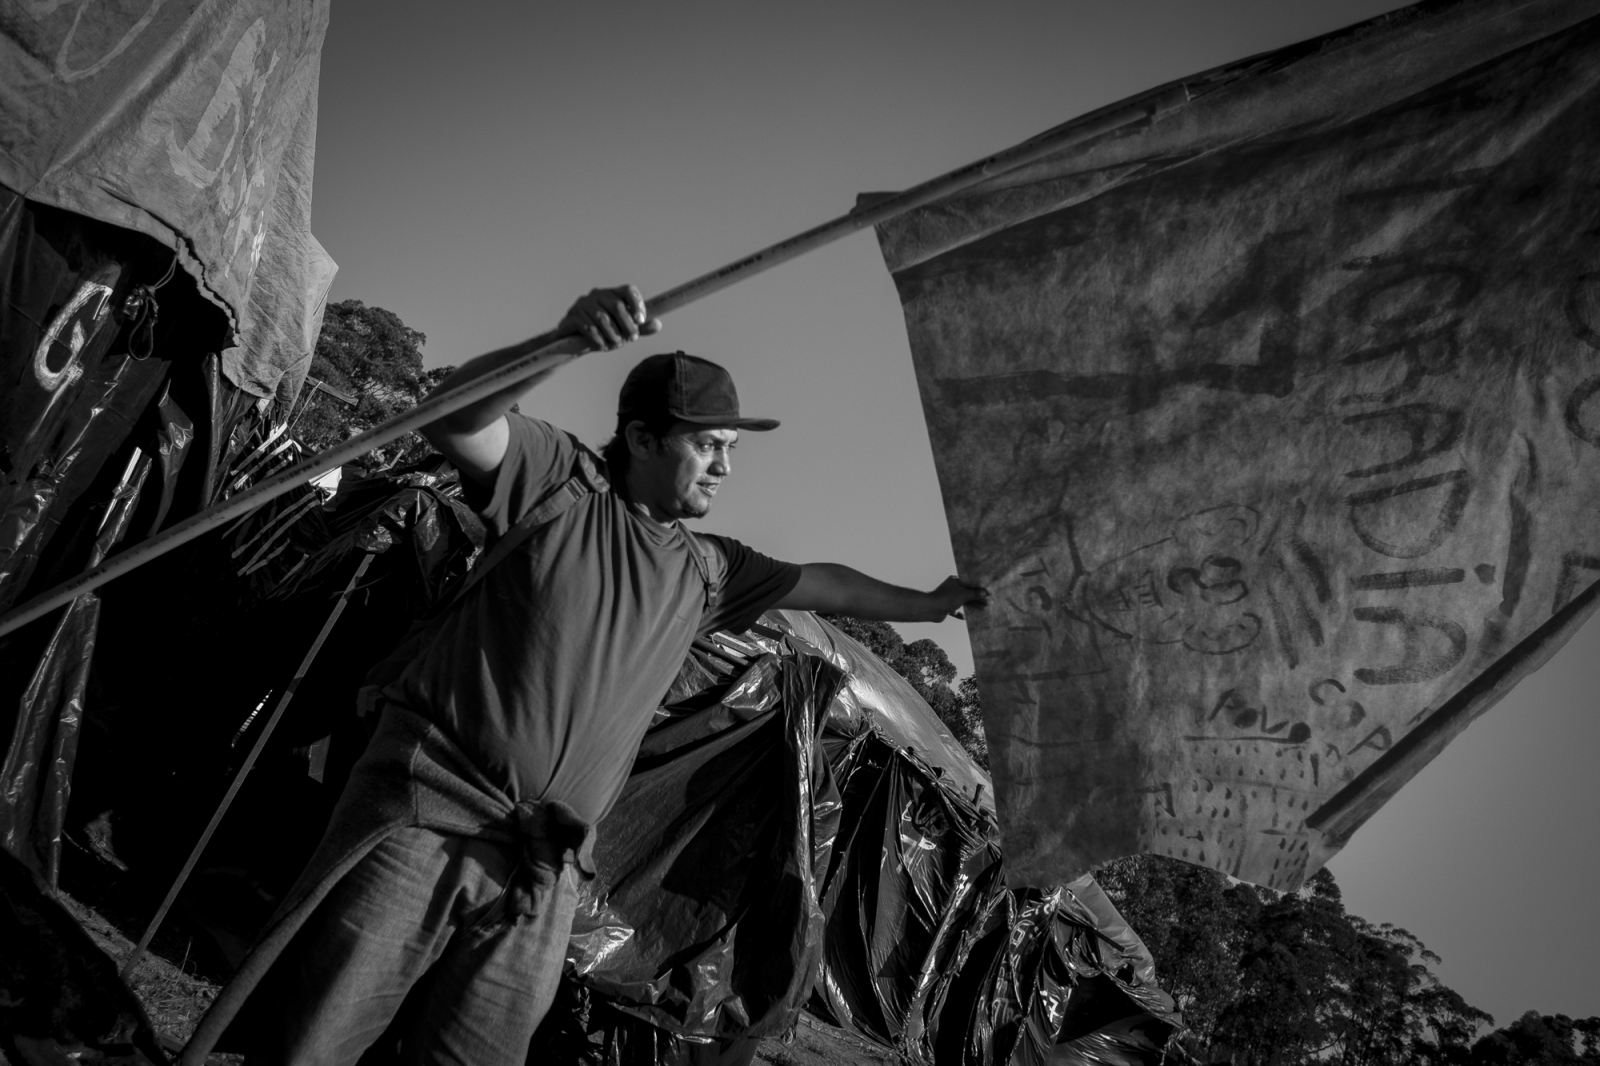 A member of the Movement of Workers Without Ceiling (MTST) prepares a flag for the protest demanding for housing not only for the residents of Copa do Povo but also for other camps around the city of São Paulo. The Copa do Povo Camp, is just a few miles from the Arena Corinthians and has 5,000 homeless workers and their families occupied area of fifteen acres. They are homeless after rents skyrocketed because of the World Cup.